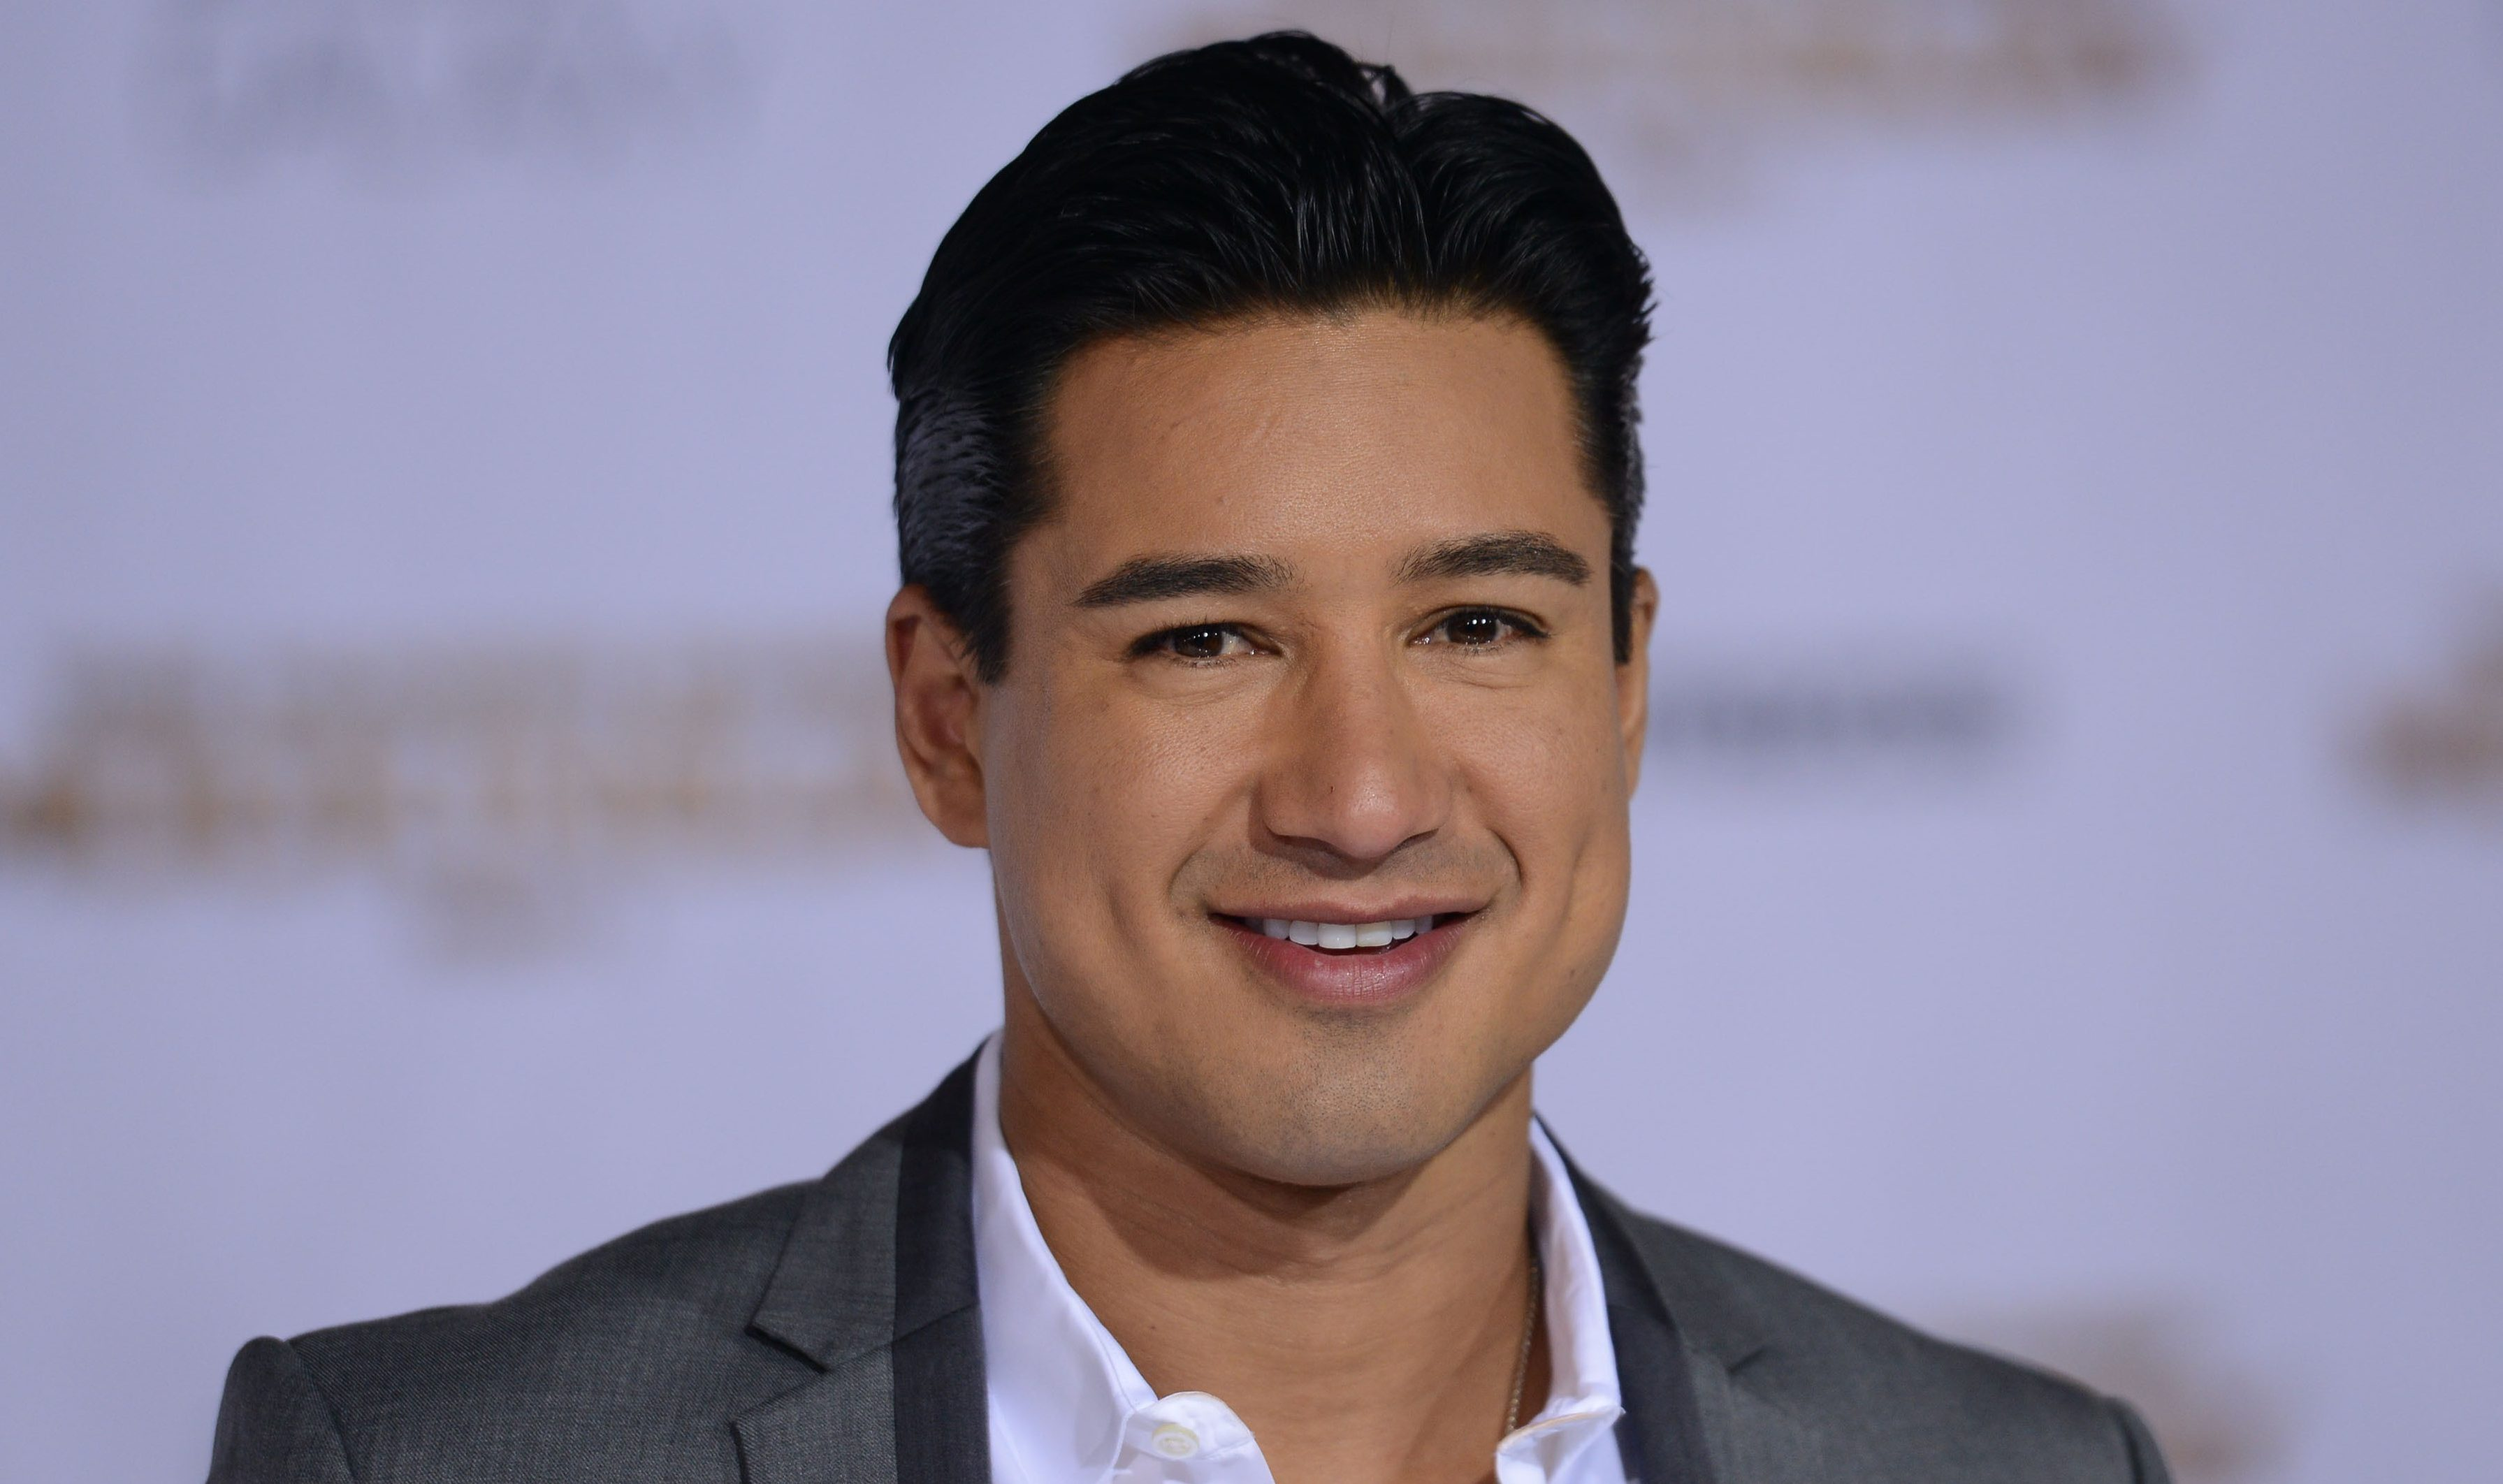 Mario Lopez Suffers Embarrassing Flub But Fans Rally Around Him